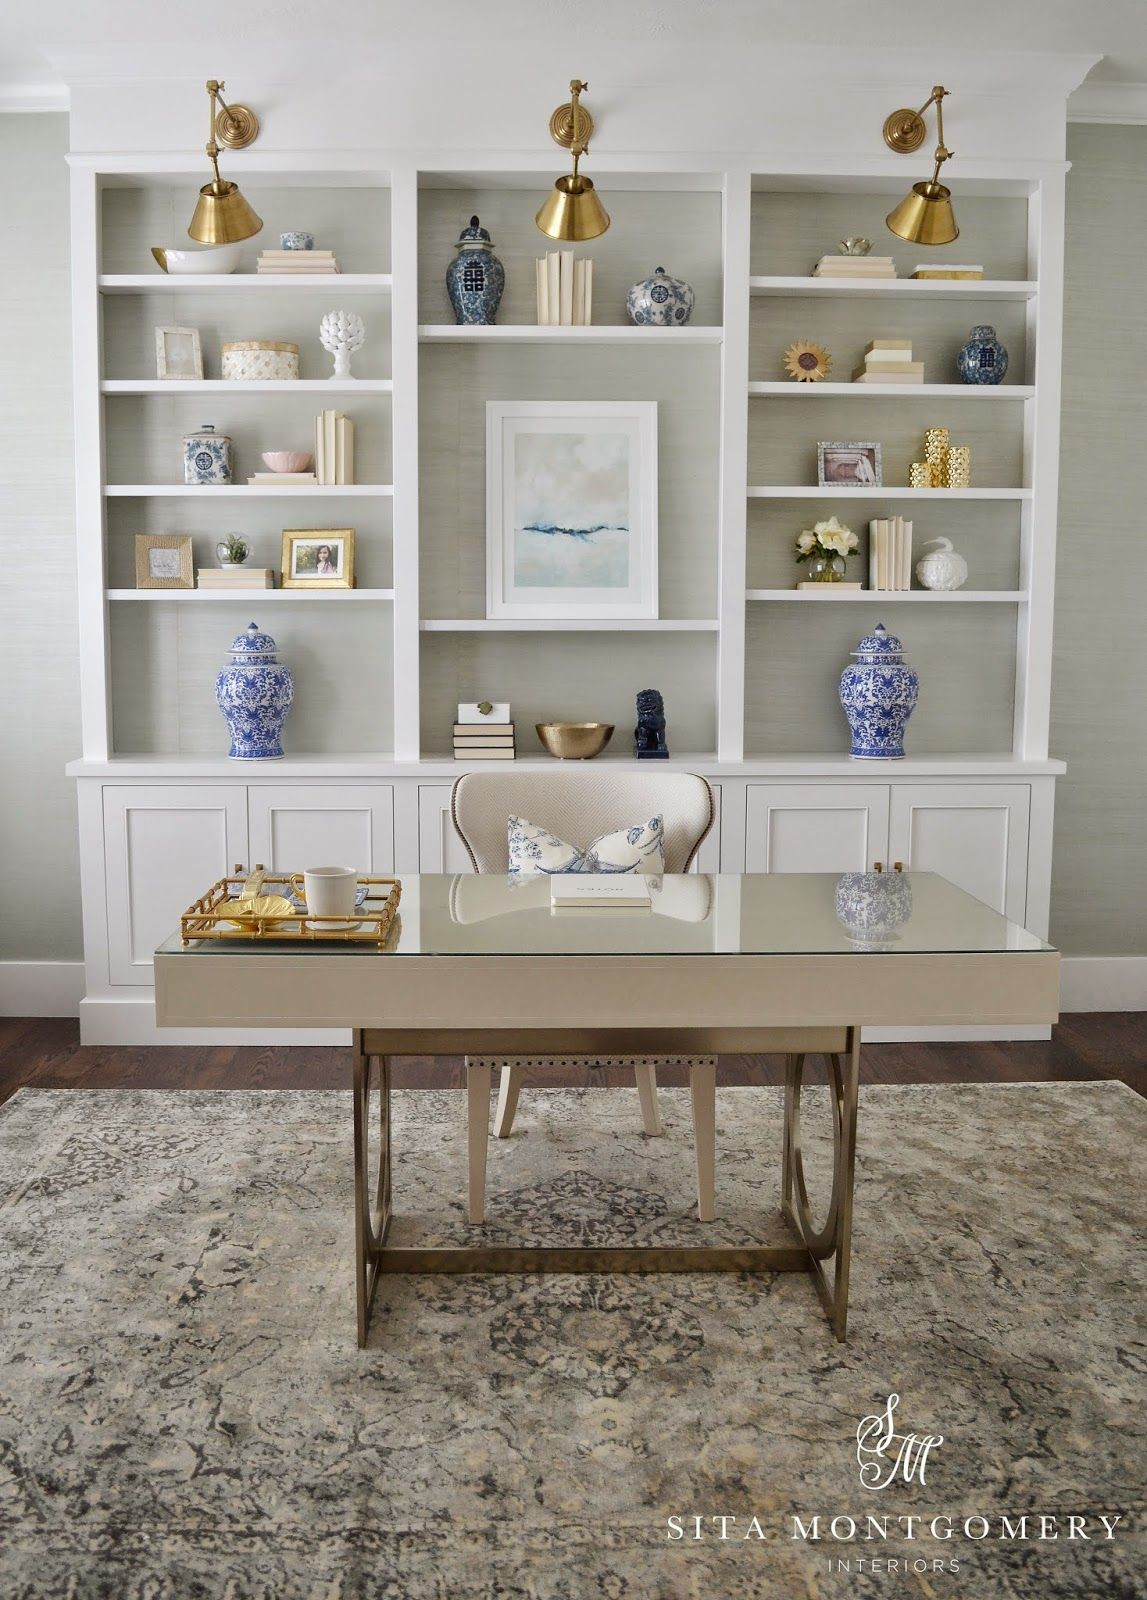 Custom Built Ins With Adjustable Shelves For Office